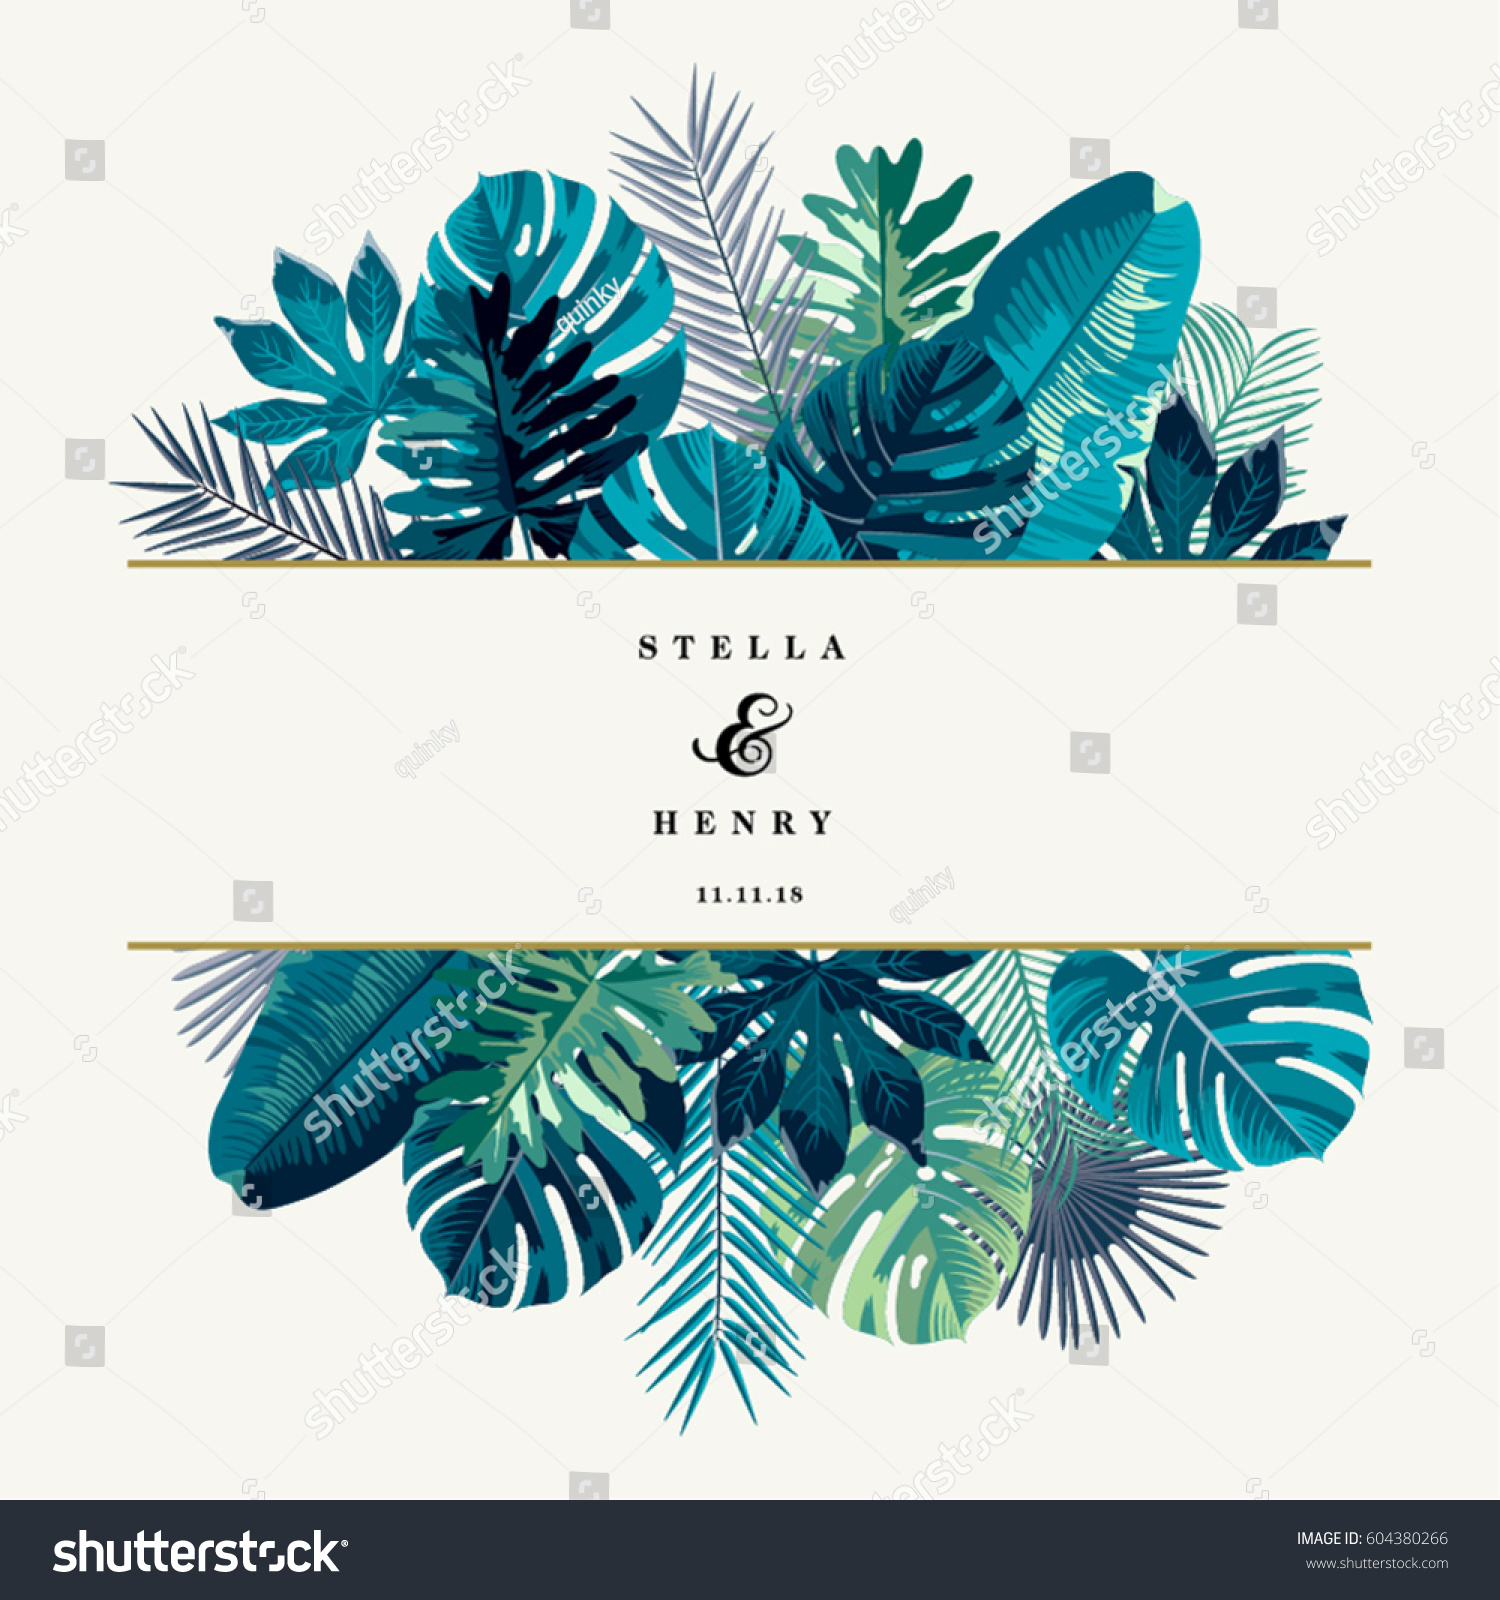 Trendy Summer Tropical Leaves Vector Design #604380266